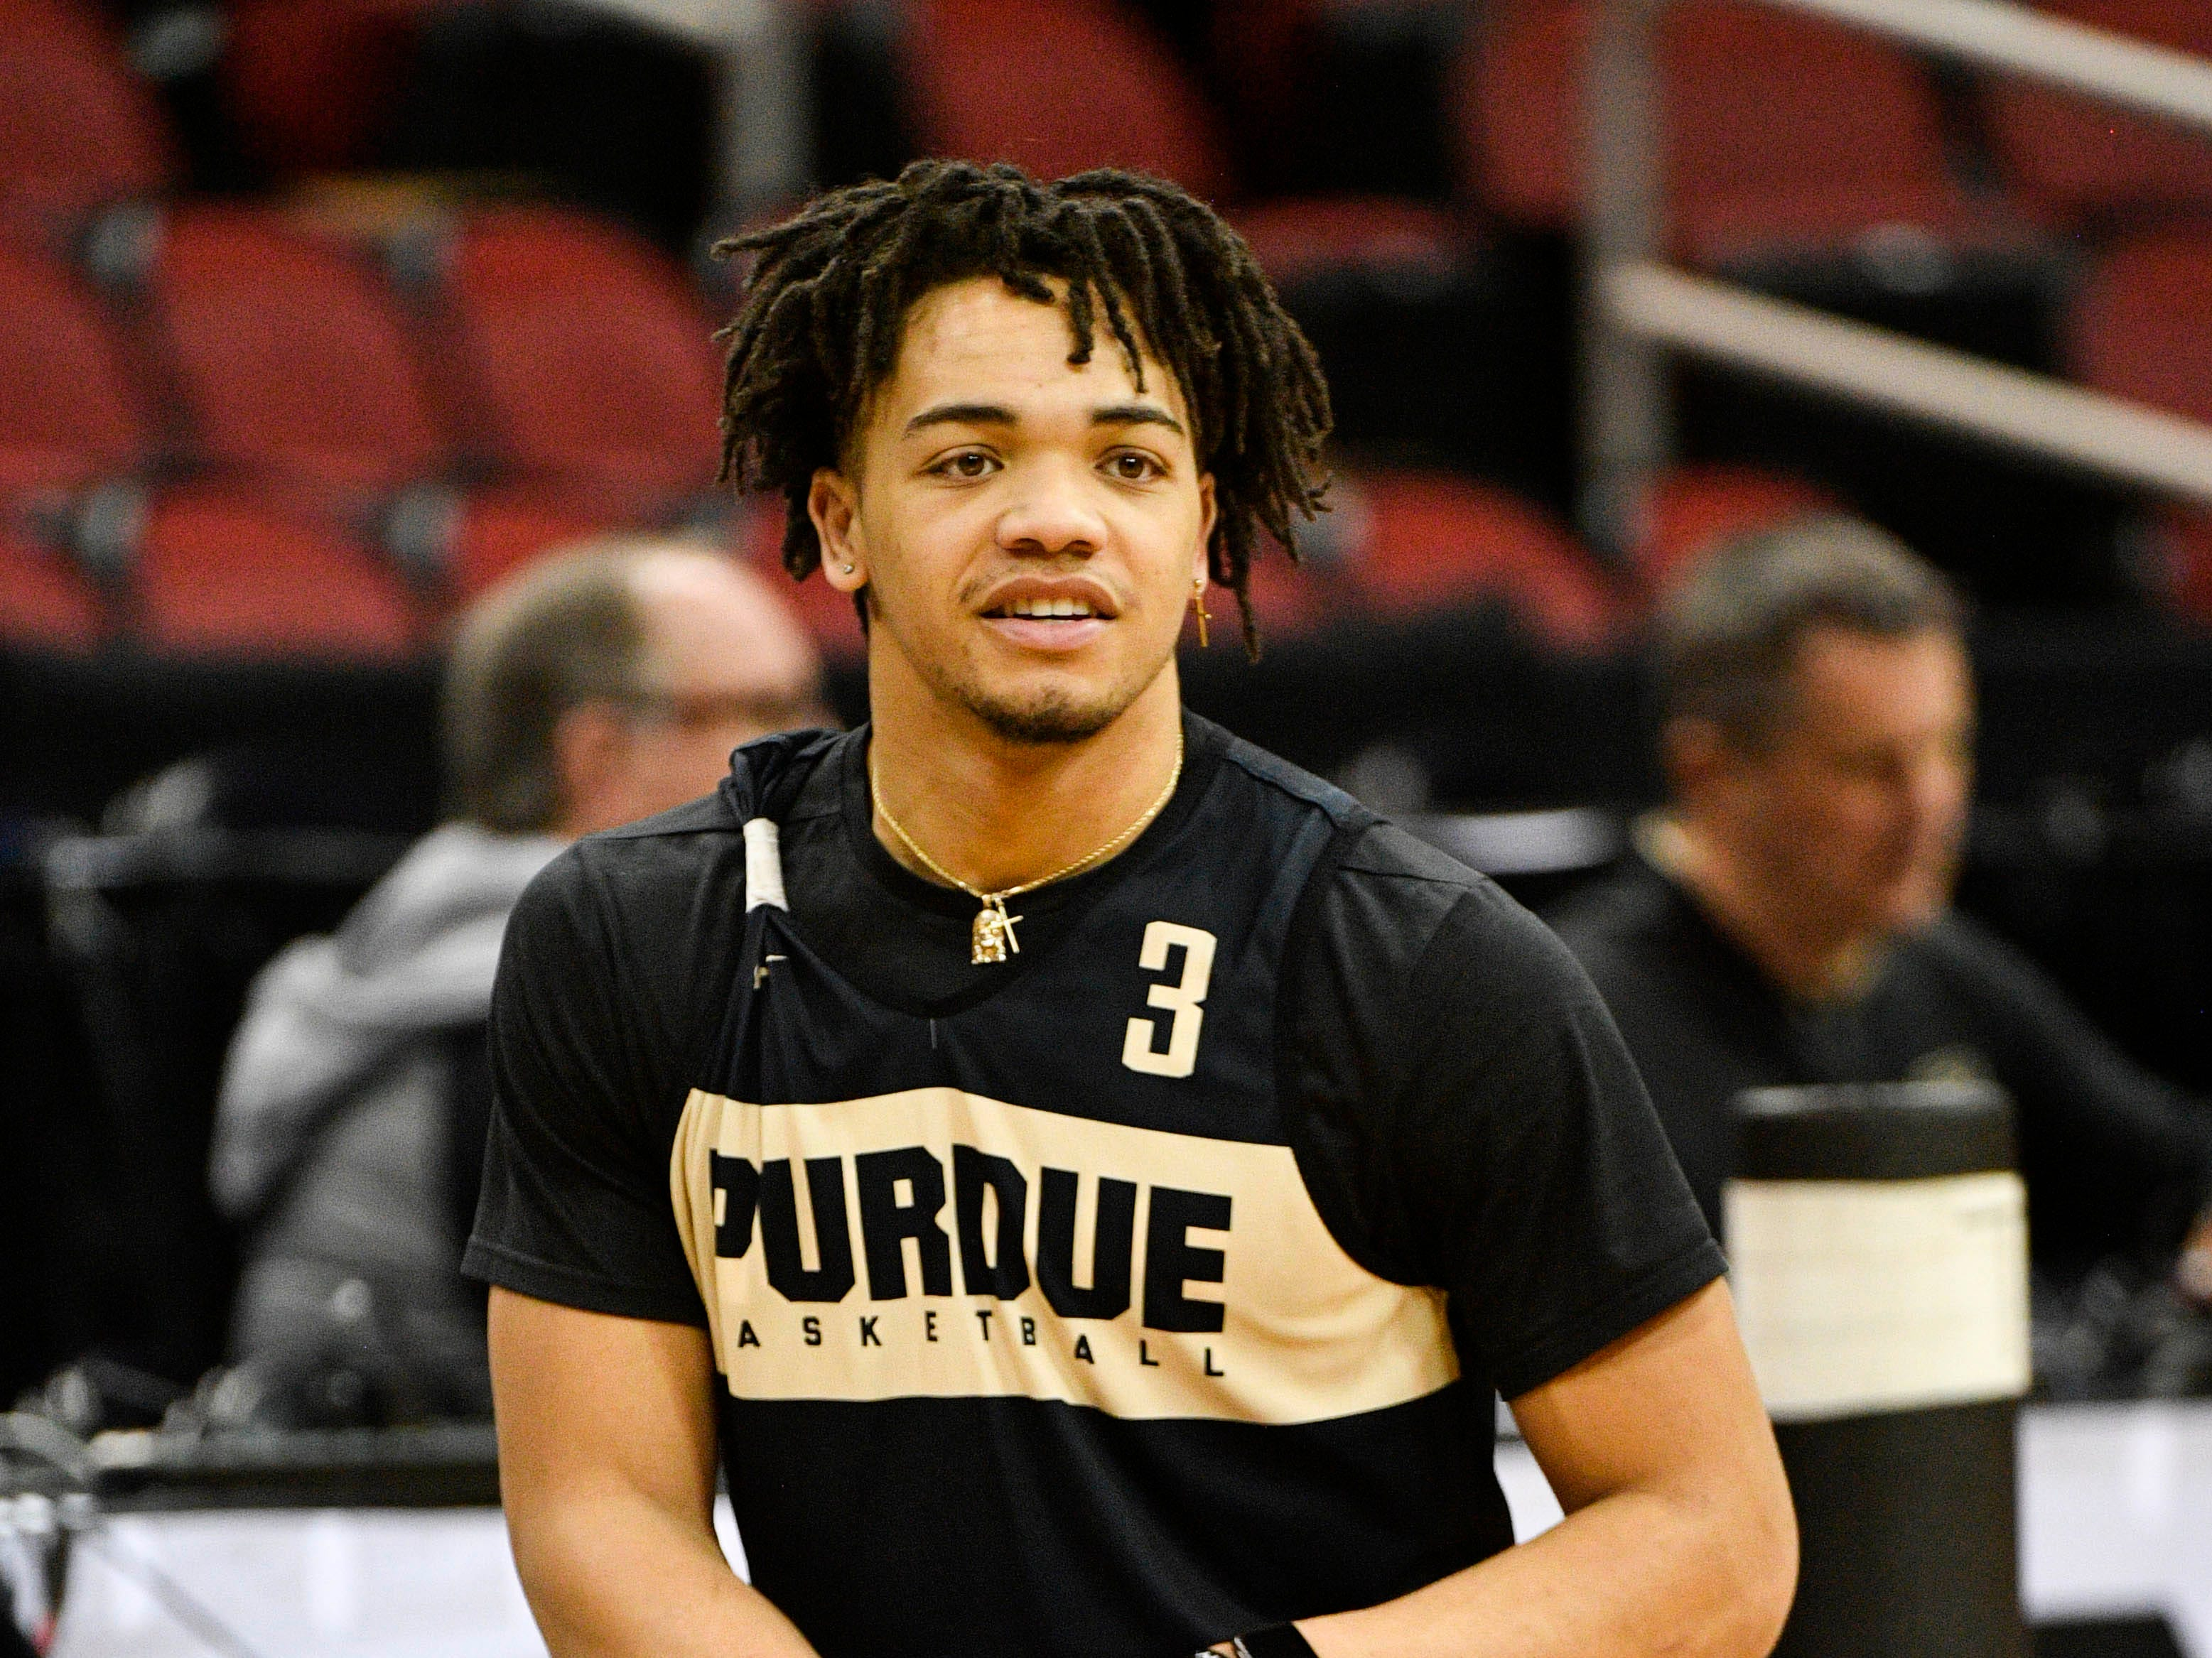 Mar 27, 2019; Louisville, KY, United States; Purdue Boilermakers guard Carsen Edwards (3) warms up during the Purdue Boilermakers practice for the south regional of the 2019 NCAA Tournament at KFC Yum Center. Mandatory Credit: Jamie Rhodes-USA TODAY Sports